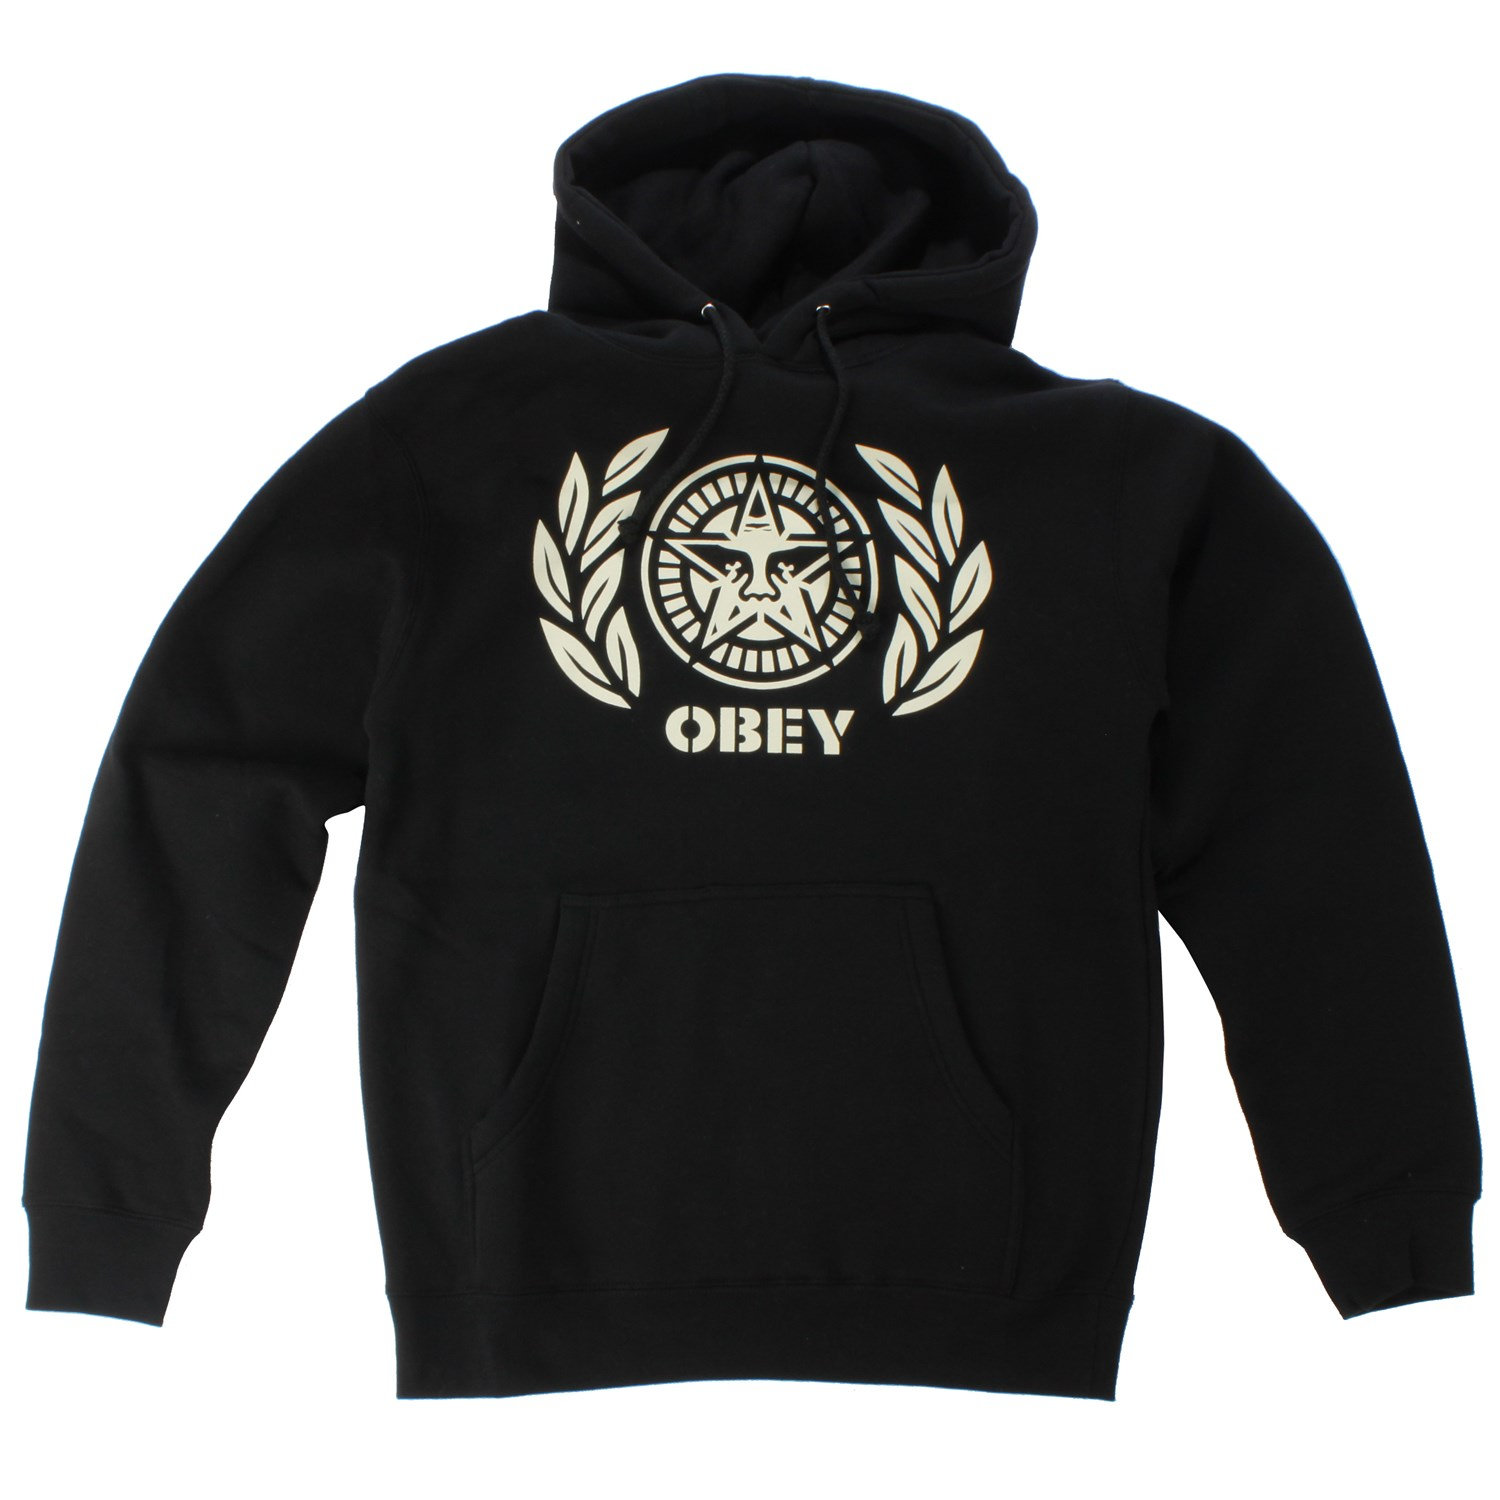 Obey womens hoodies